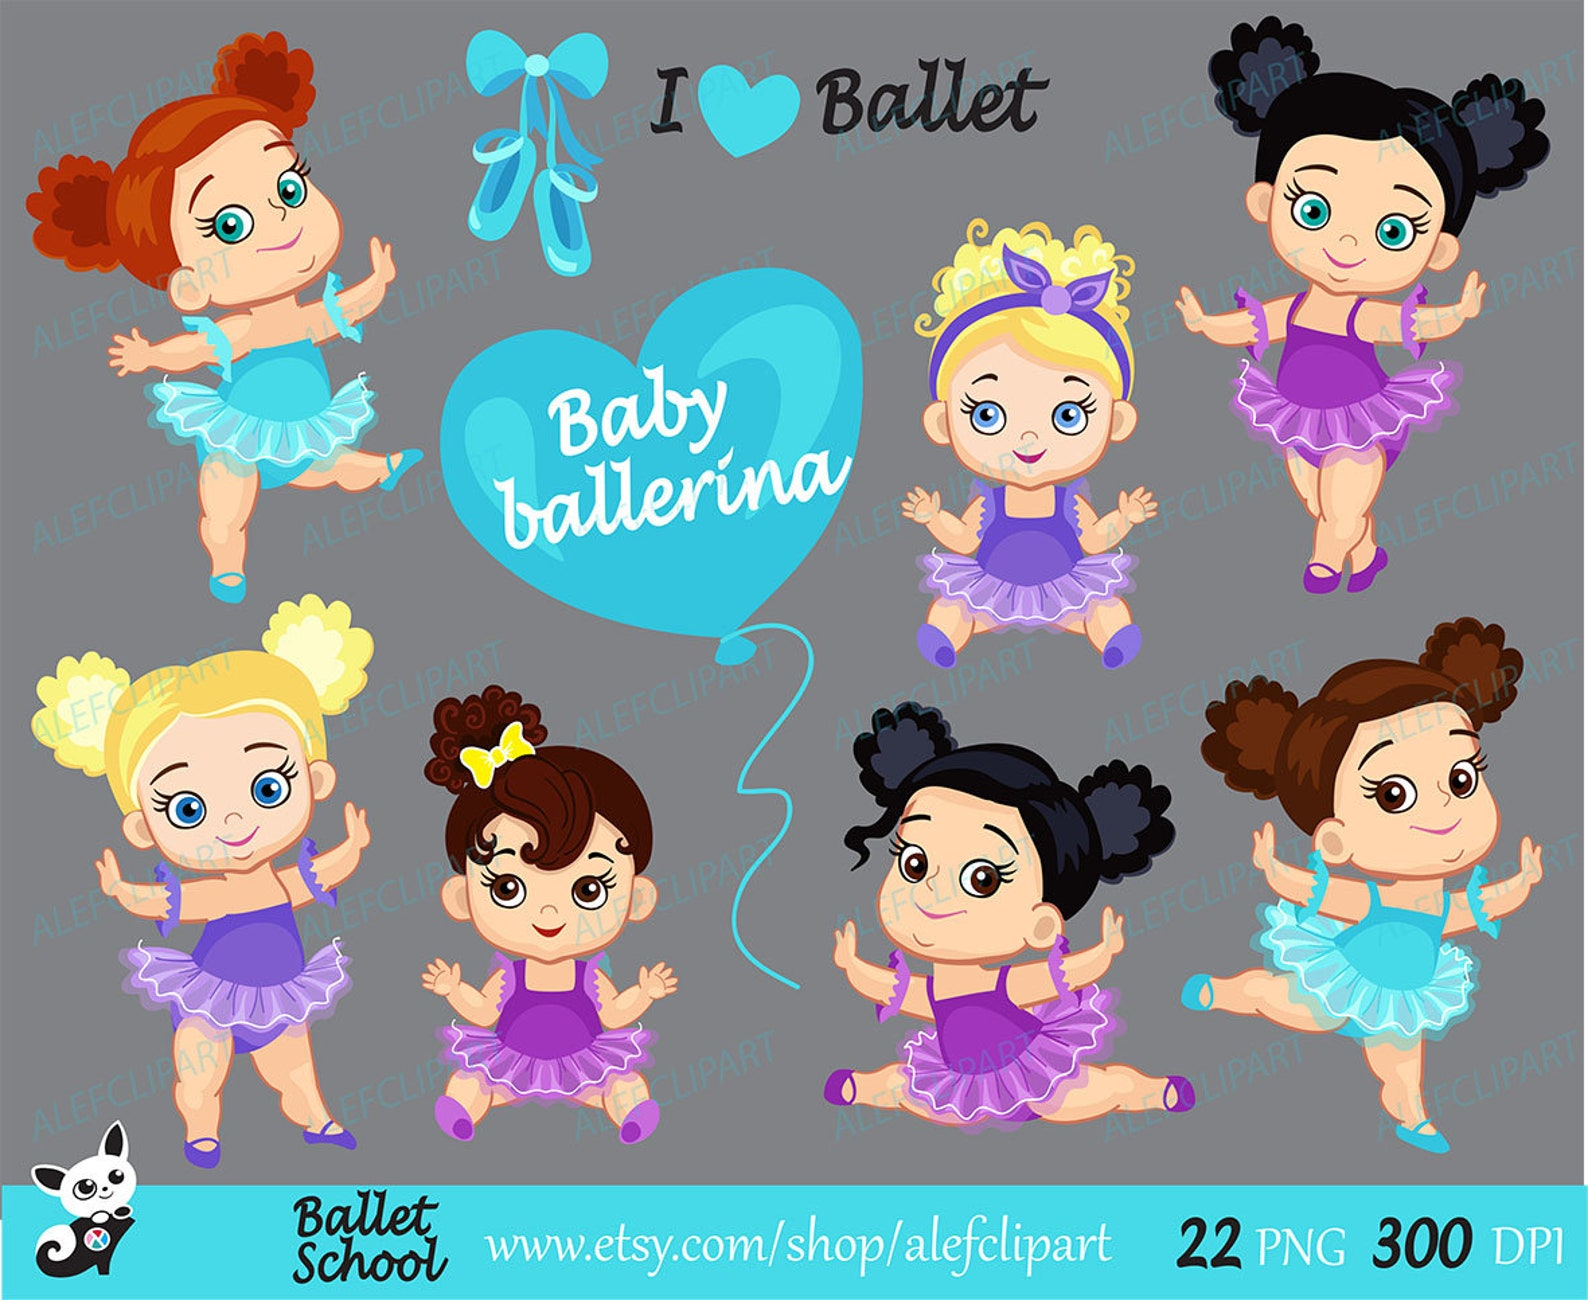 ballet - baby ballerina clipart, ballet clipart, baby ballerinas. ballerinas and purple and blue tutus. for personal and commerc